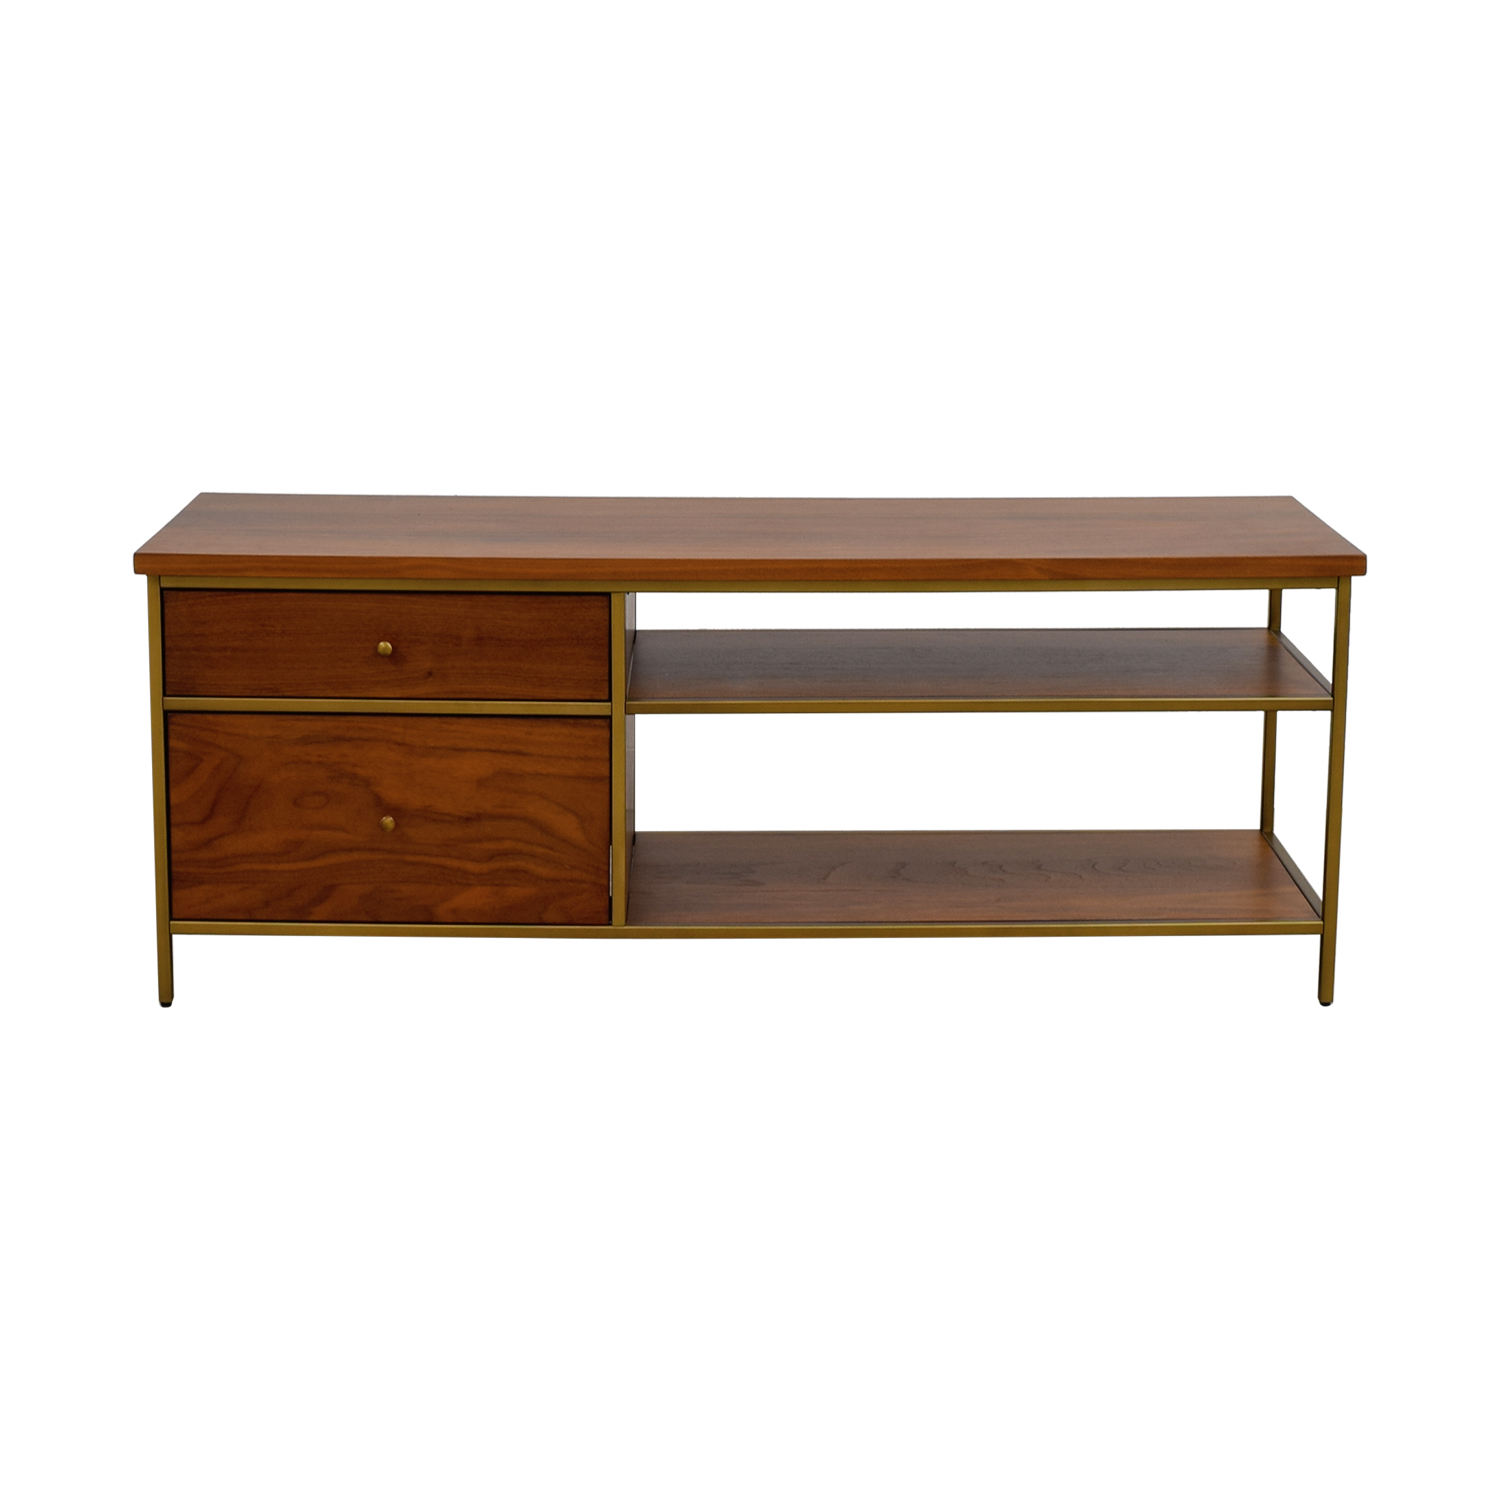 West Elm West Elm Nook Media Console on sale